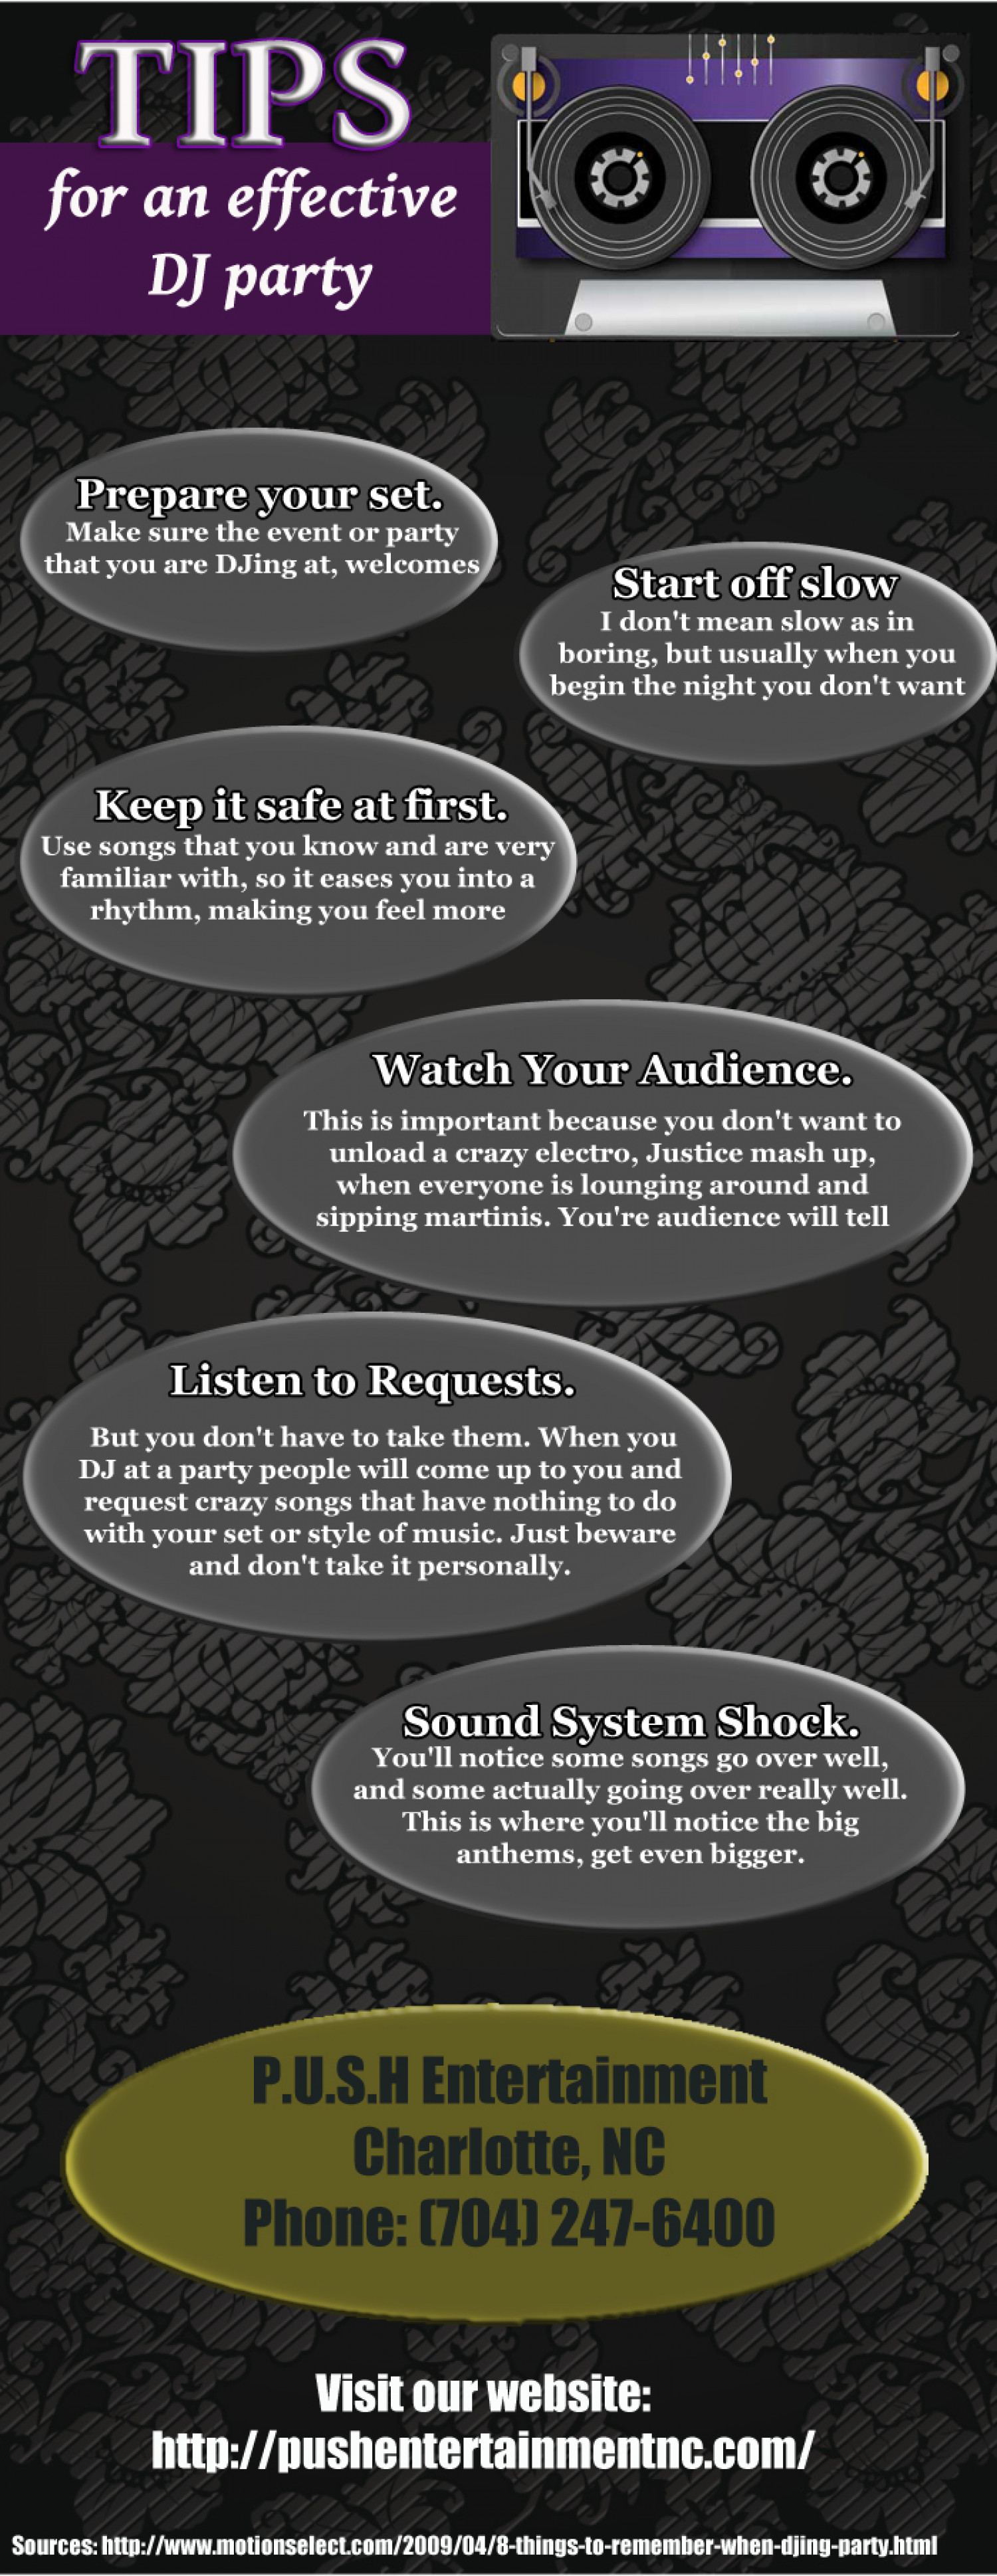 Tips For an Effective DJ Party Infographic